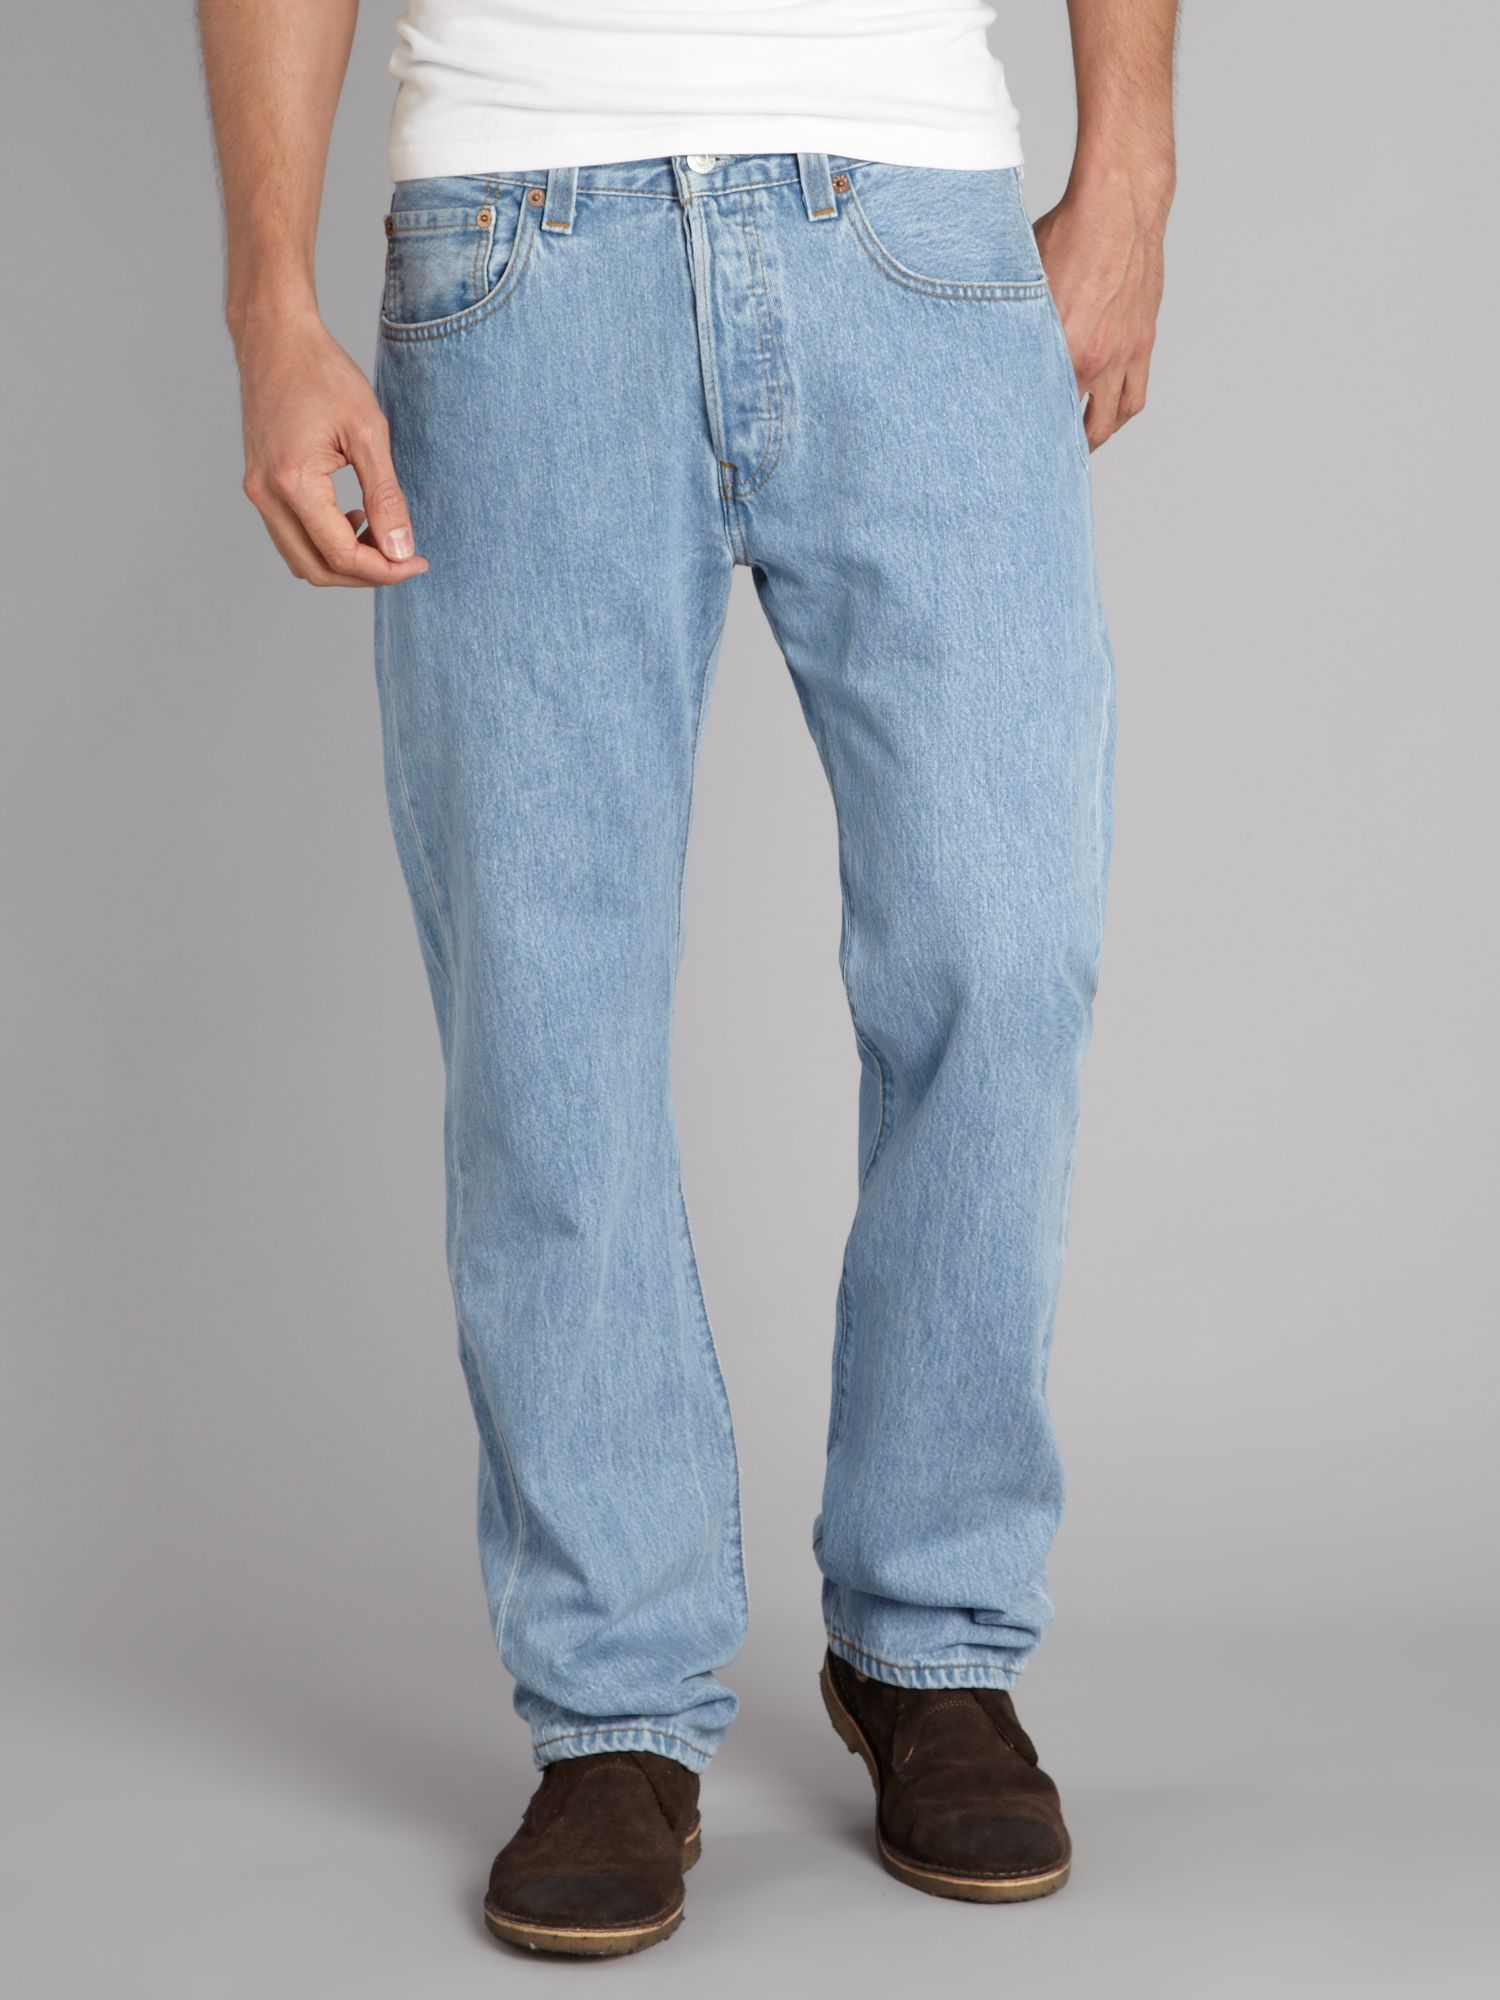 501 straight fit light wash jeans